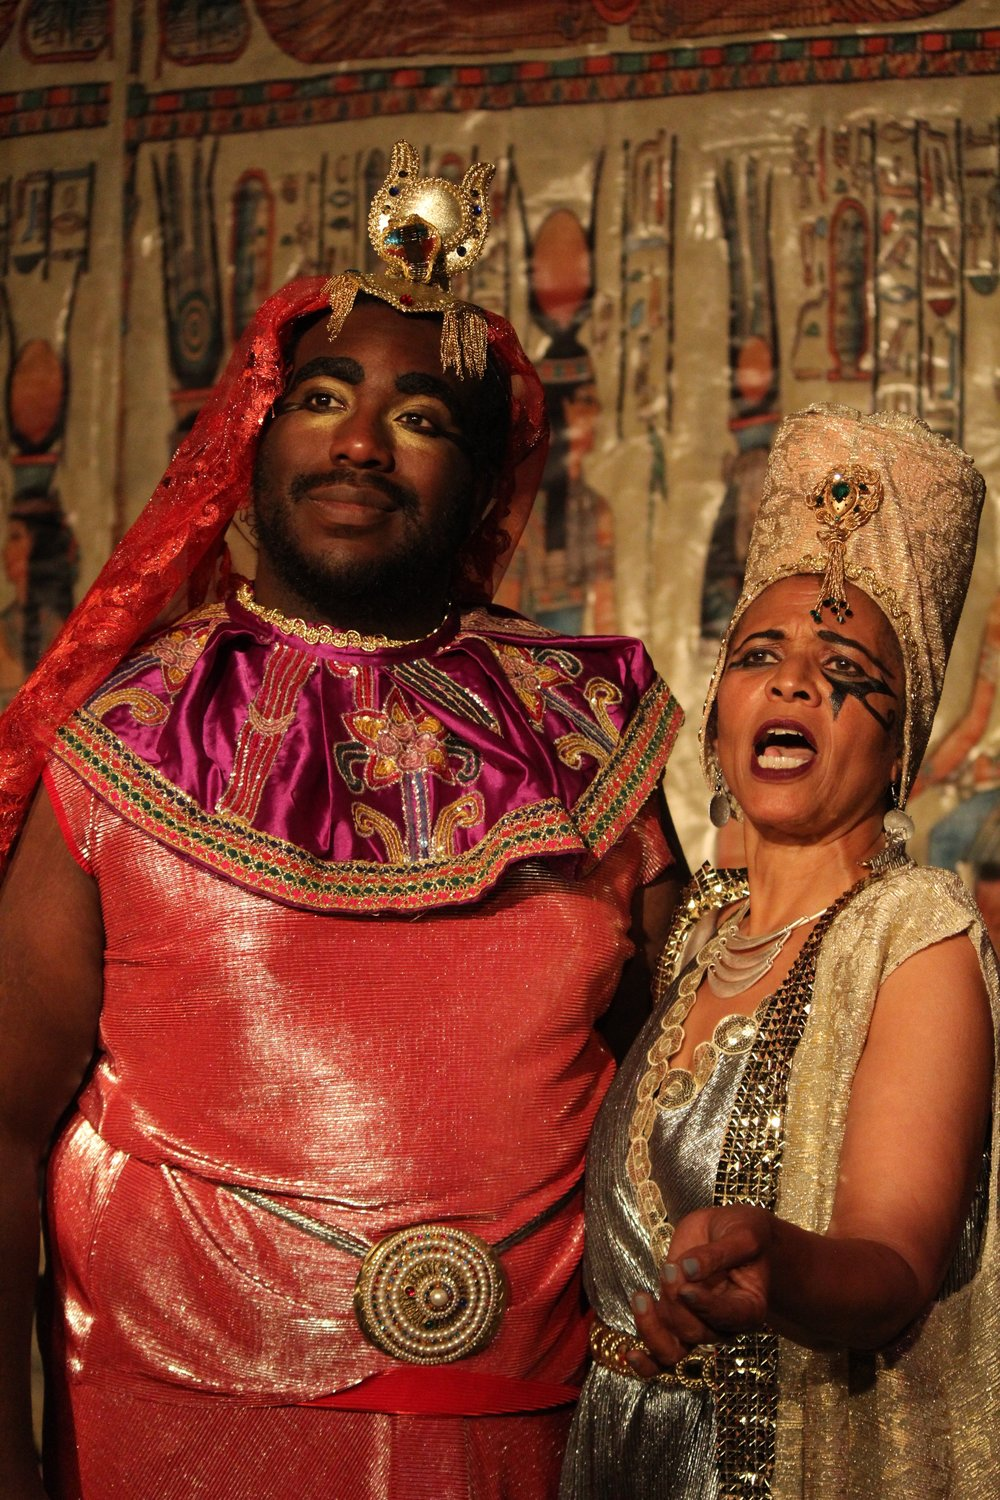 James Brunt  as Queen Astarte &  Artie Thompson  as King Byblos